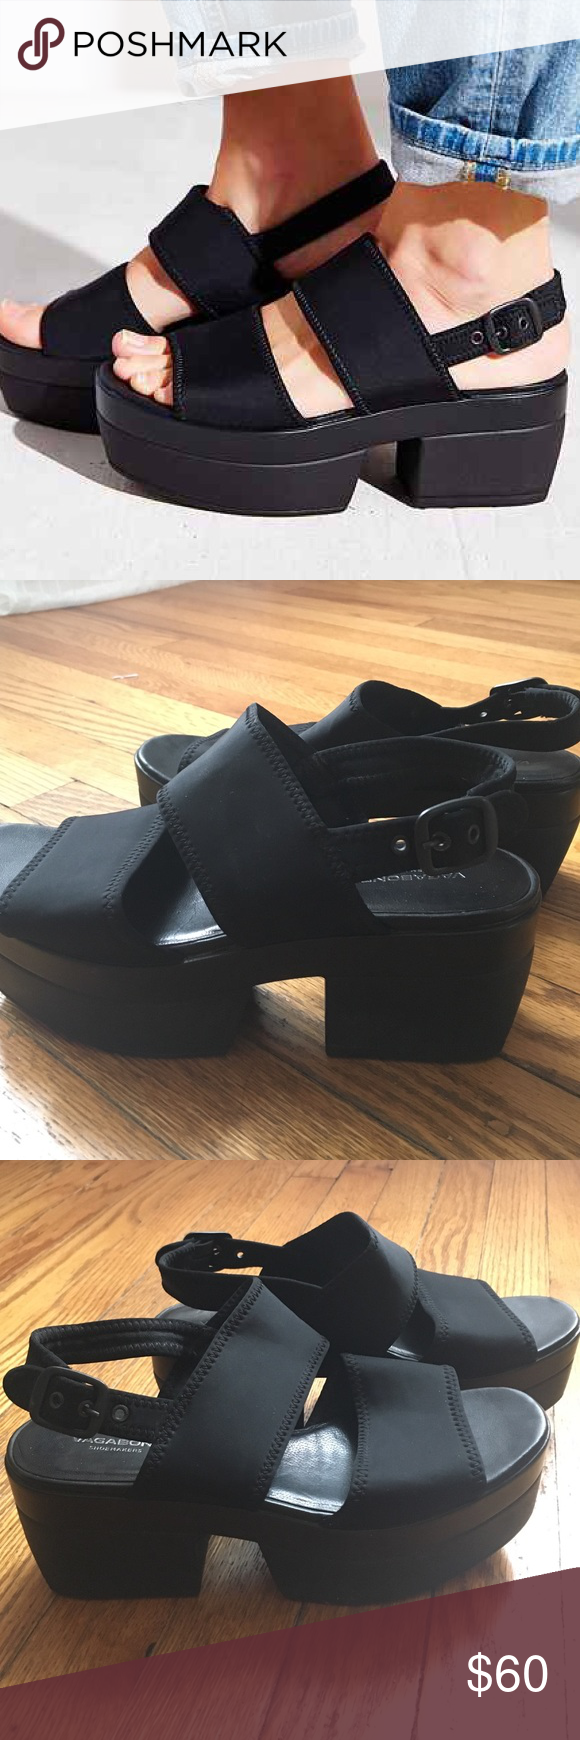 81b800ee8ae4 Vagabond Lindi Sandals Vagabond black Lindi Sandal. Only been worn a few  times. Urban Outfitters Shoes Sandals